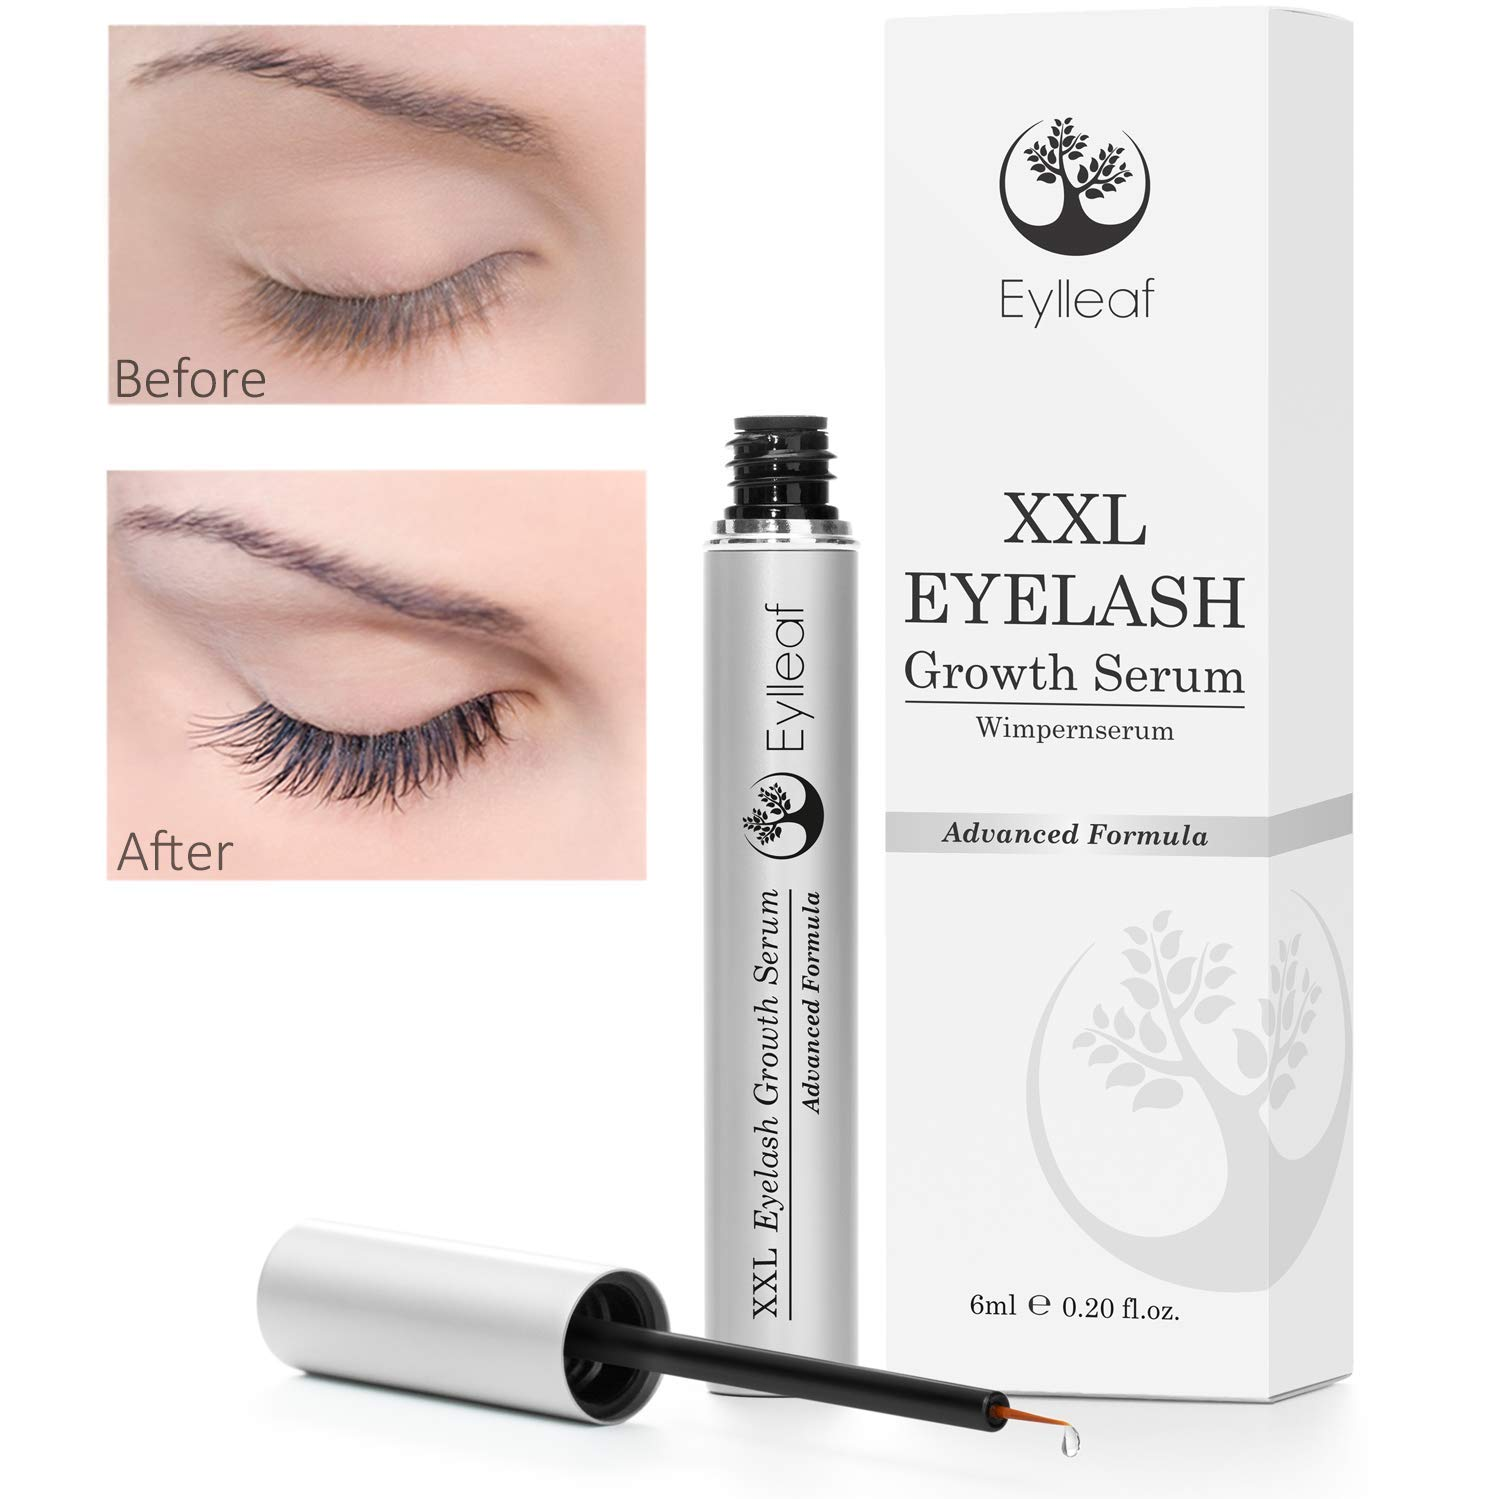 Eyelash Serum By Eylleaf Eyebrow And Eyelash Growth Serum For Long